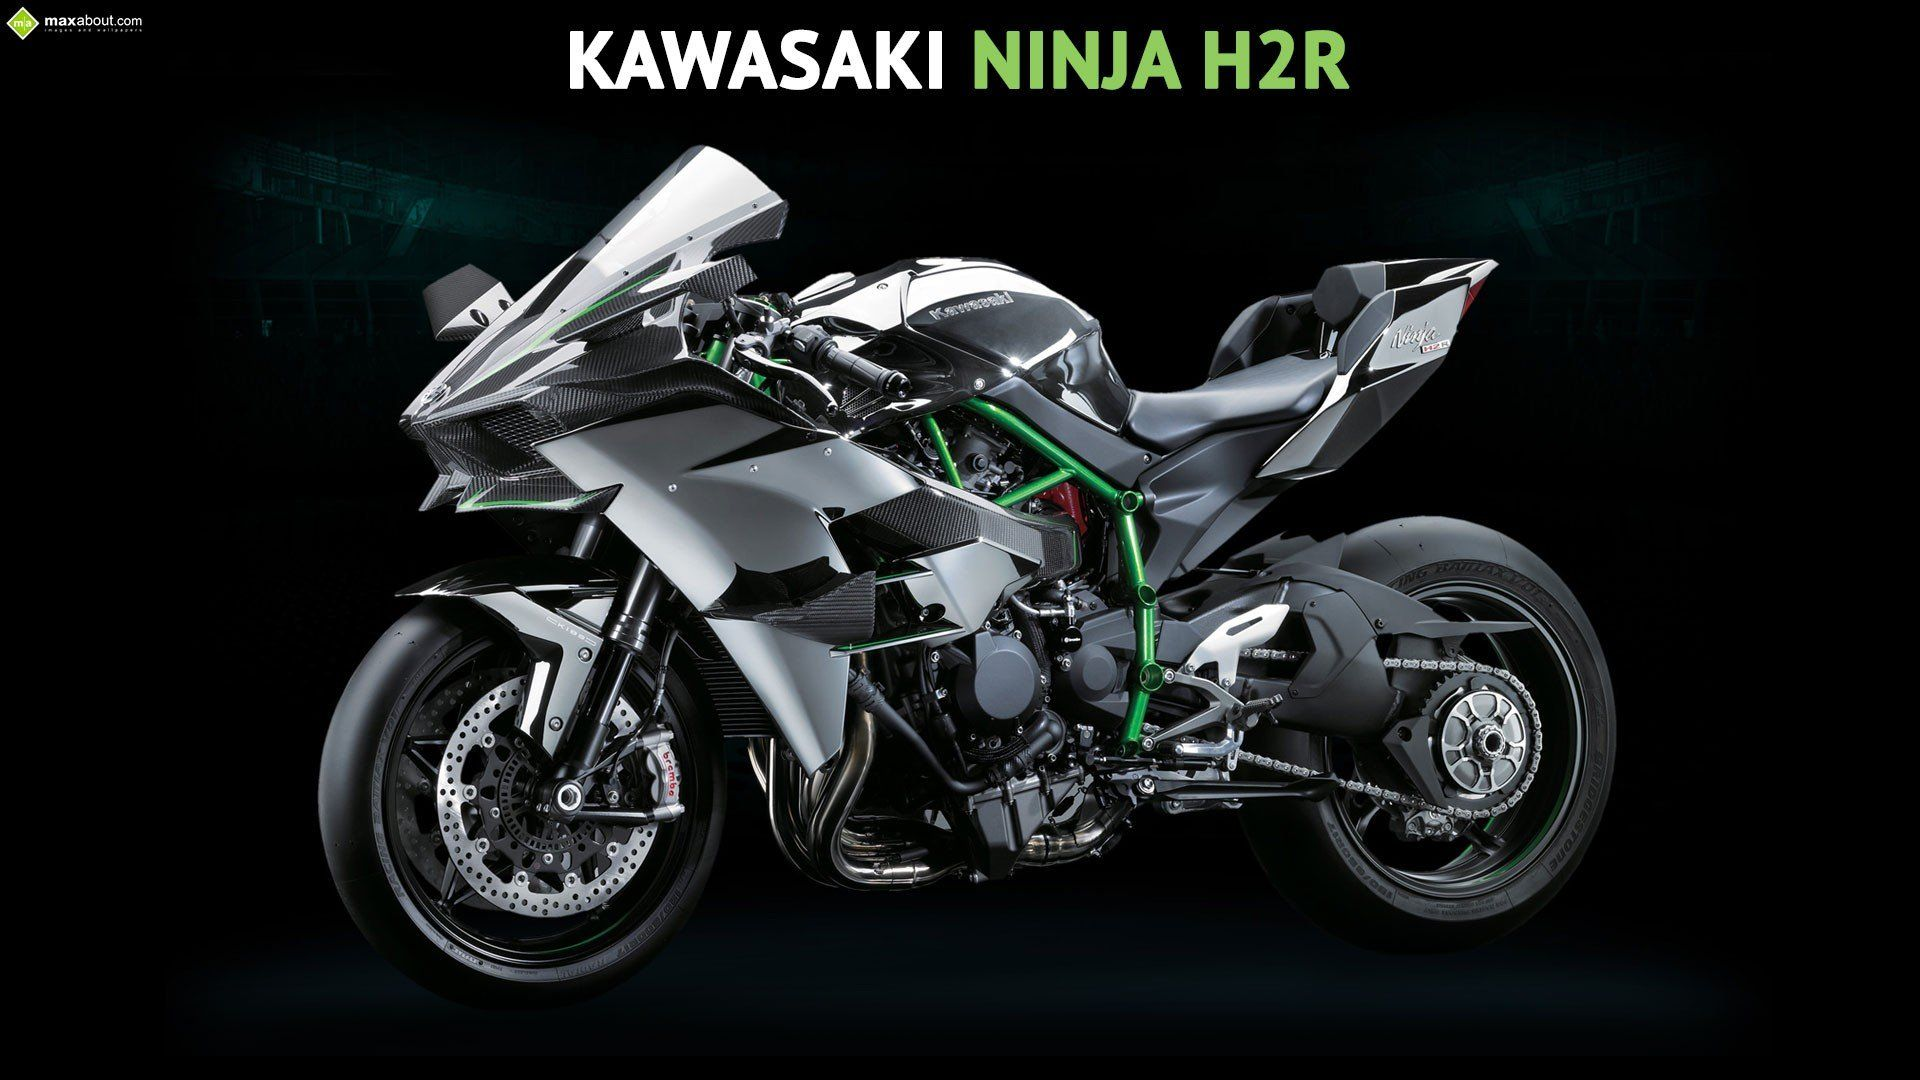 Kawasaki H2r 1080p Wallpapers Top Free Kawasaki H2r 1080p